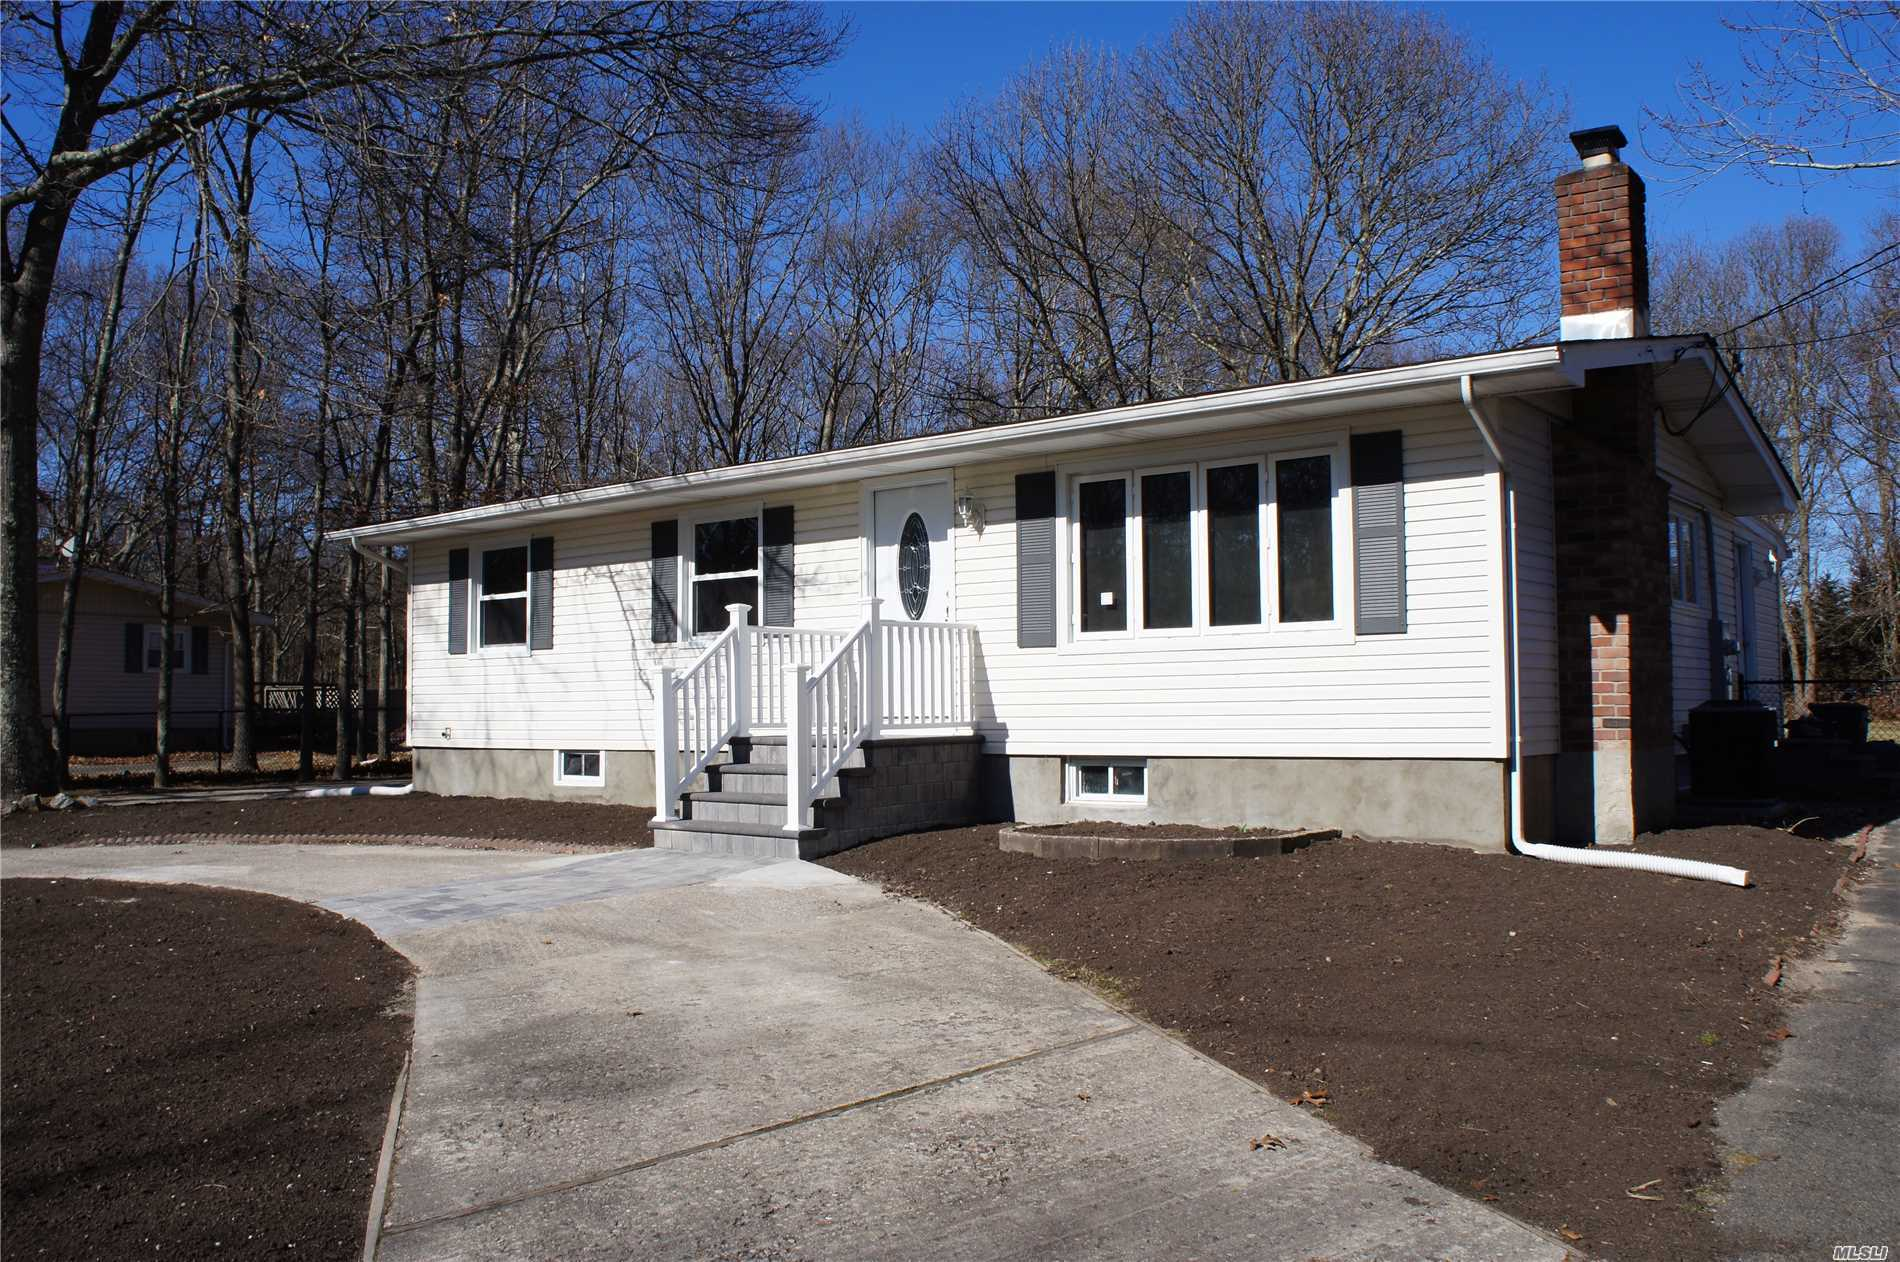 This fully remodeled home is move-in ready! Located on a half acre, fully fenced in with brand new roofing. Stainless steel appliances, wood flooring, and a central heating and cooling system are a few of the assets of this three bedroom two bathroom home. Must see!